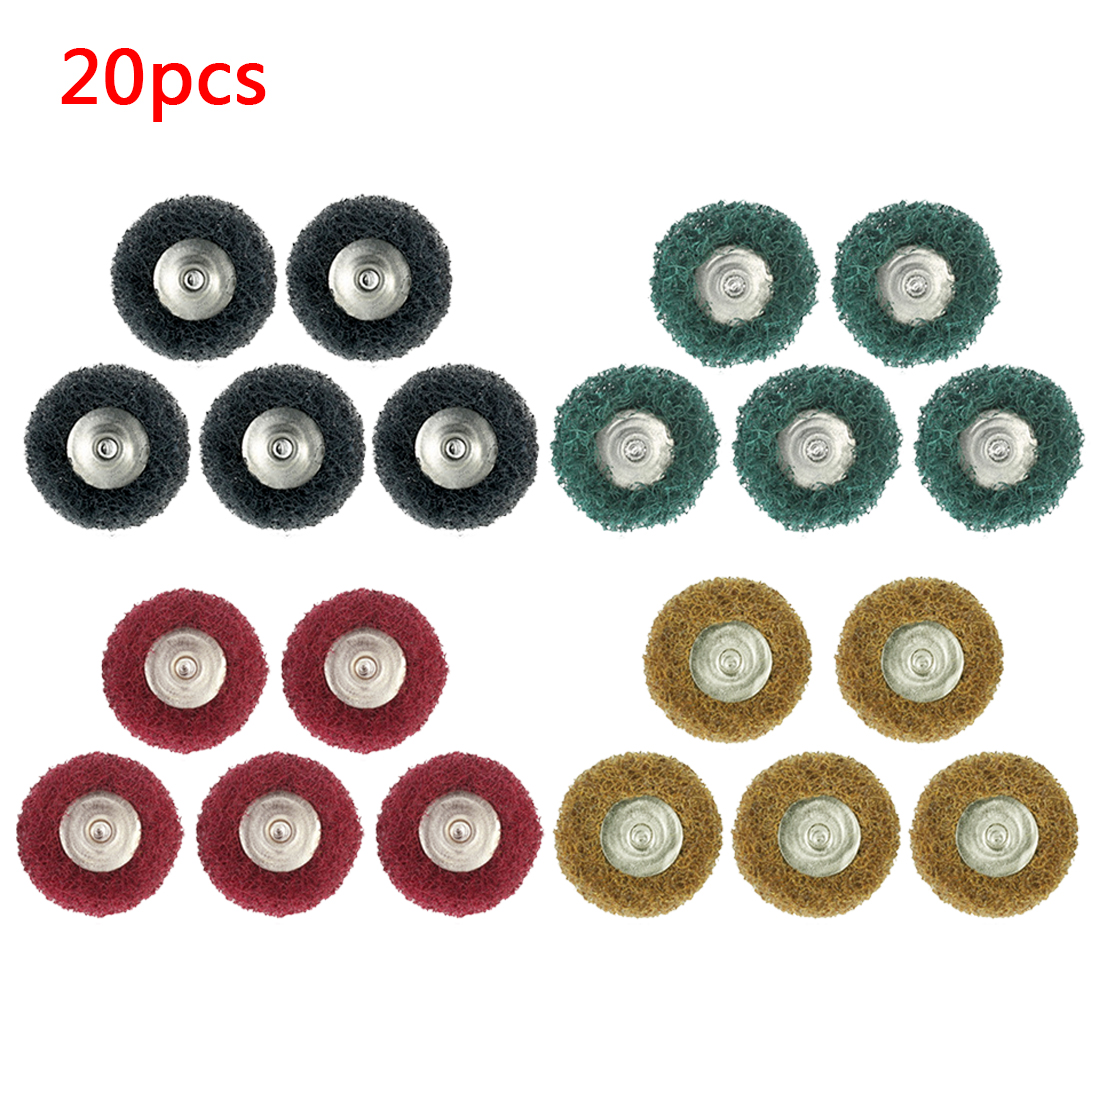 Hot Sale 20pcs Buffing Pad Brush Polishing Wheel Jewelry Metal Micro-Electronic Dremel Accessories For Rotary Polishing Pads